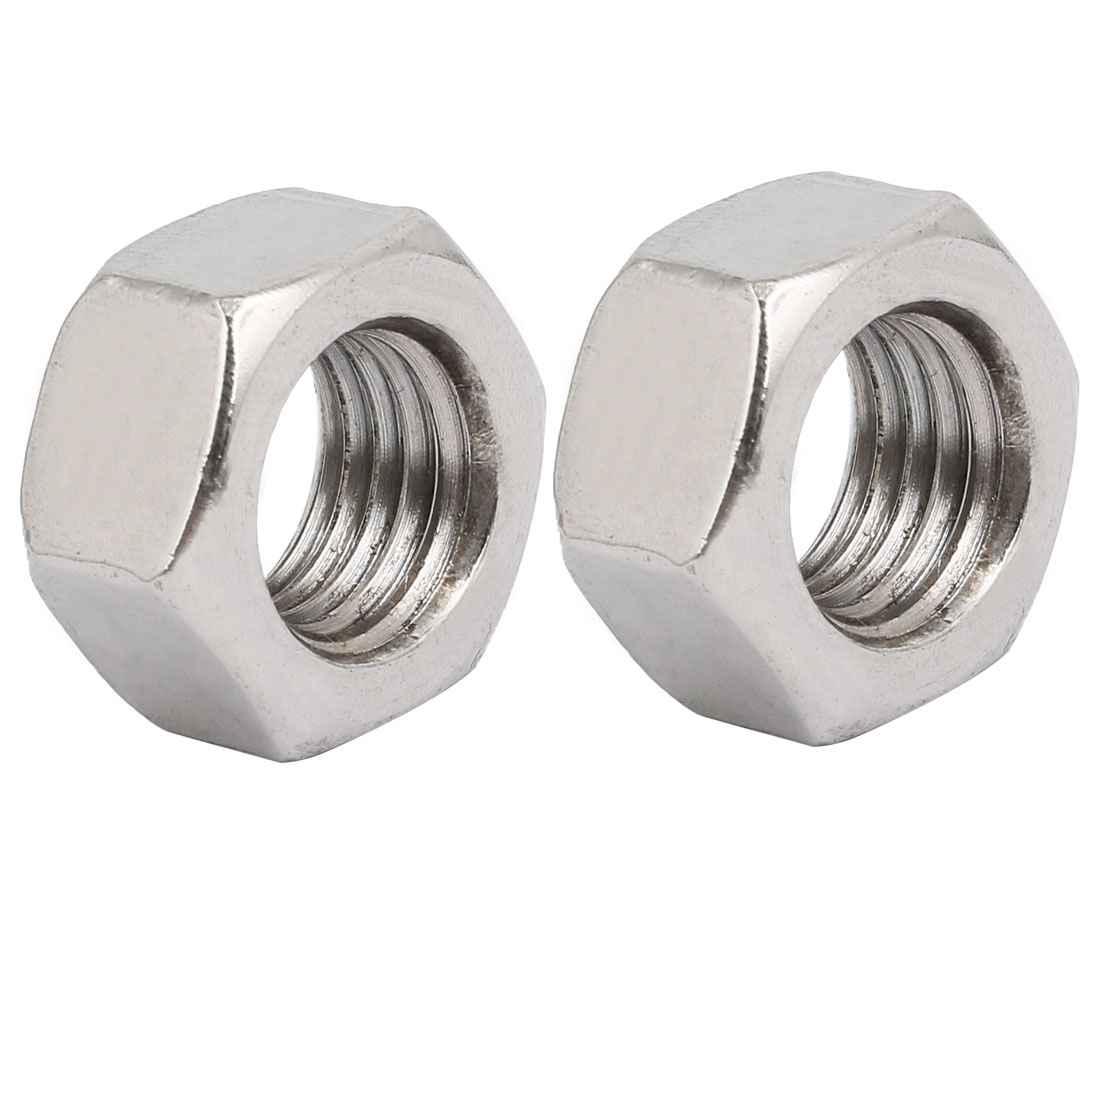 2pcs M16 x 2mm Pitch Metric Thread 201 Stainless Steel Left Hand Hex Nuts